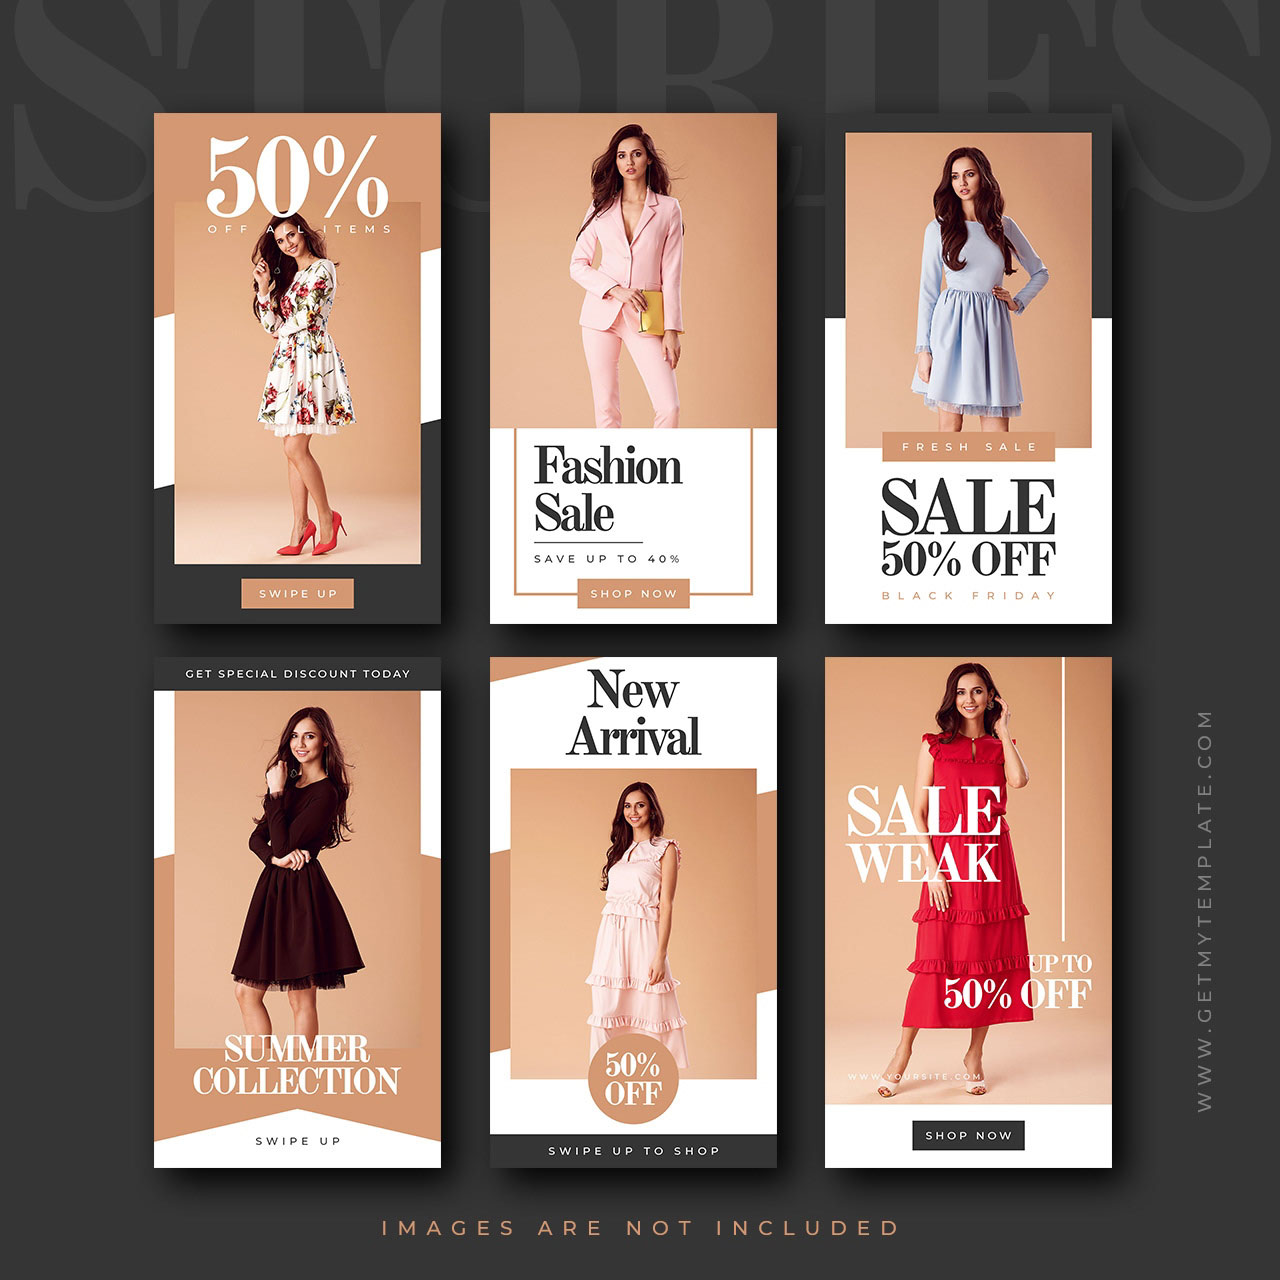 74 Free Psd Instagram Fashion Templates To Be Stylish And Premium Version Free Psd Templates